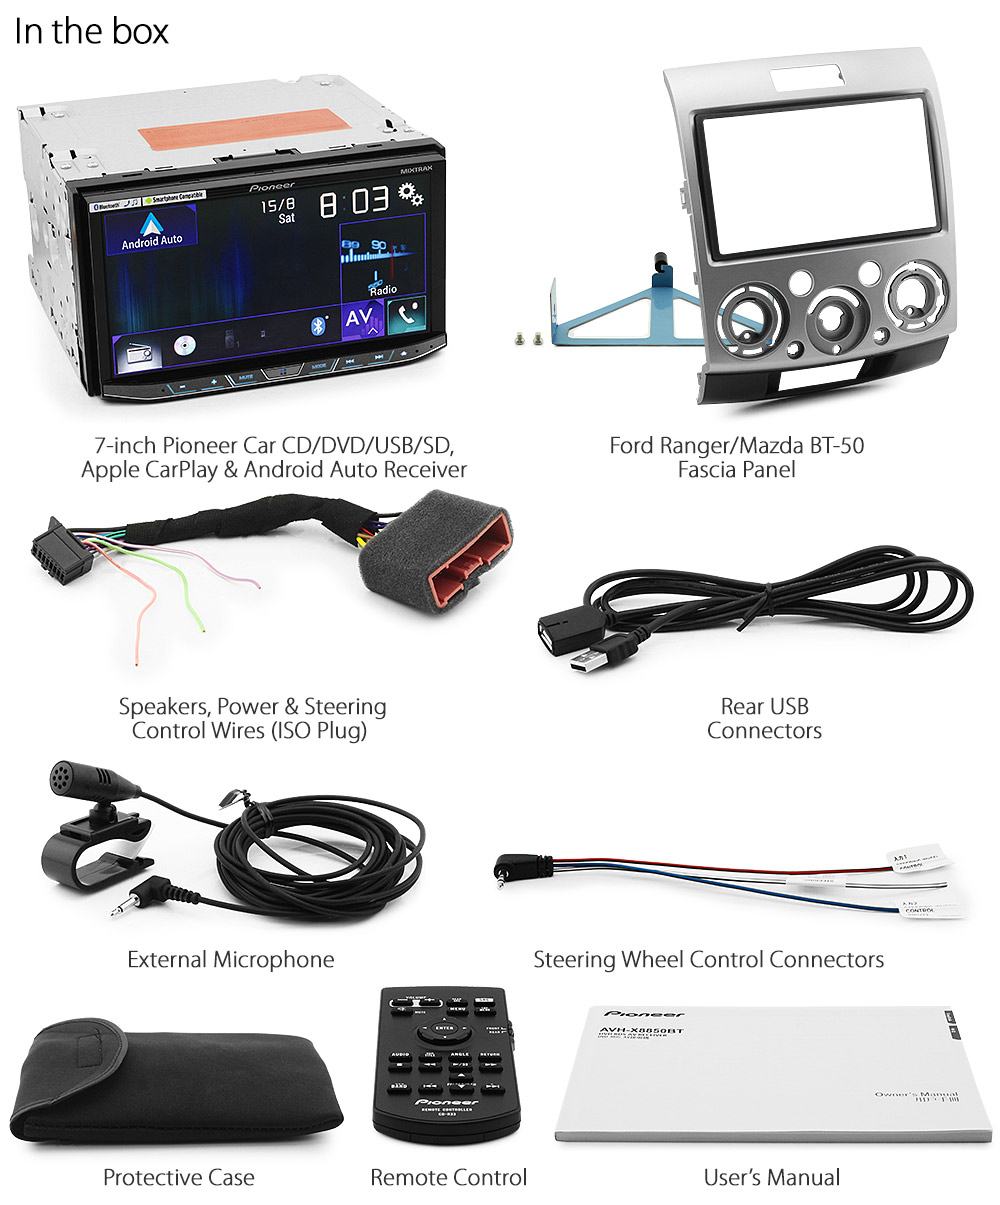 Apple Carplay Dvd Player Ford Ranger Pj Pk 2006 2011 Mp3